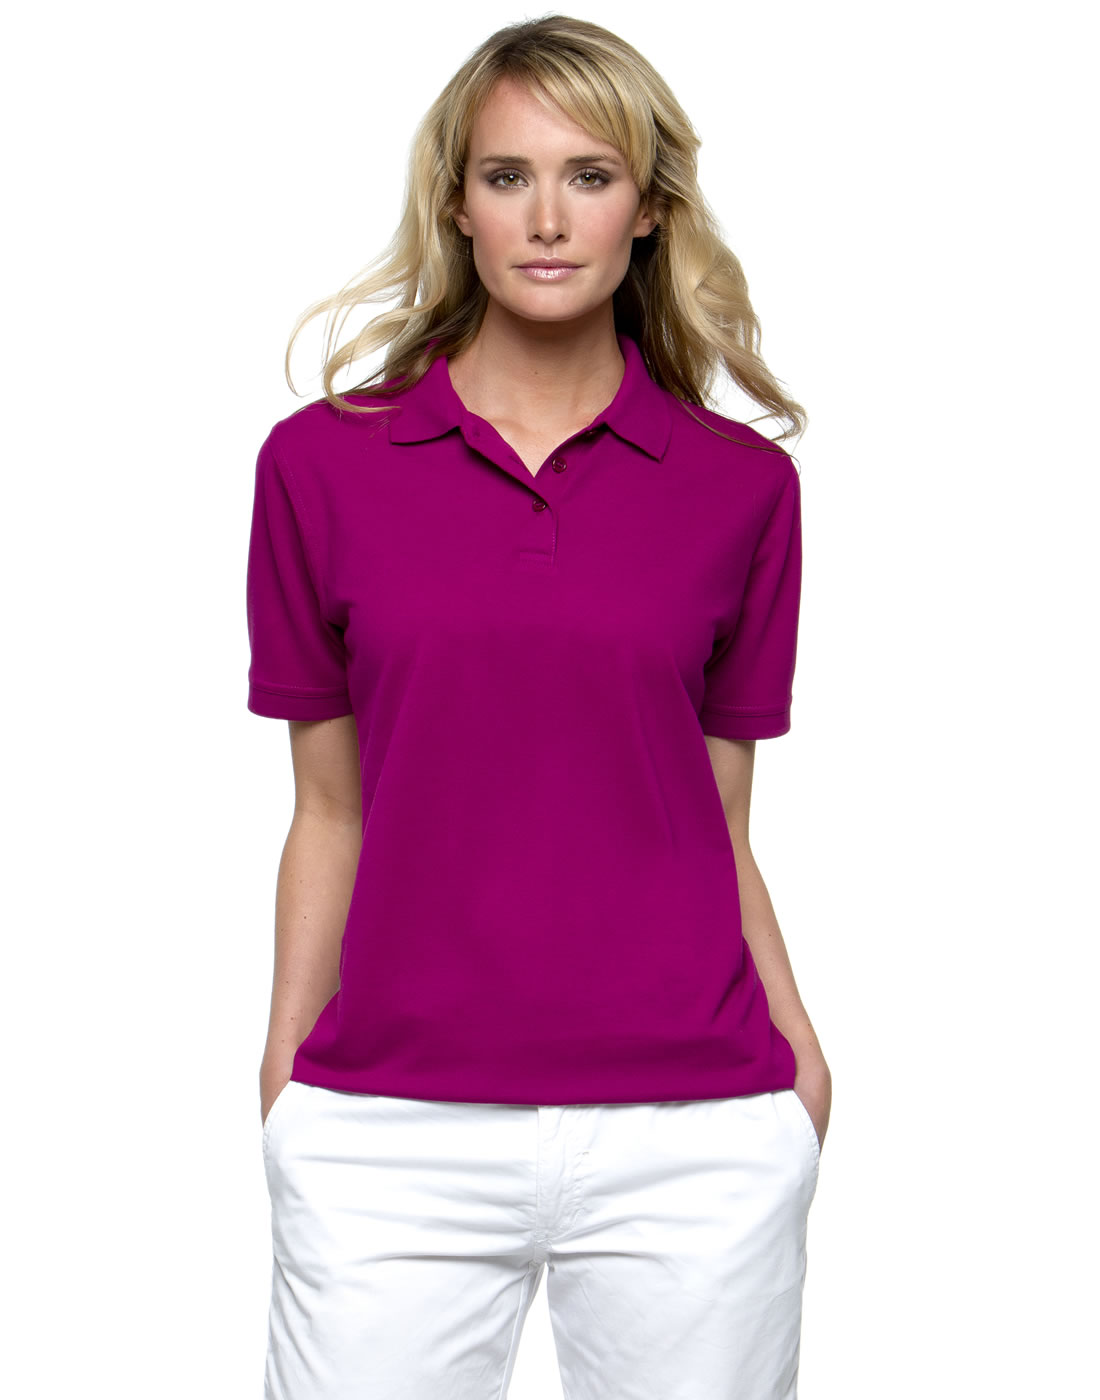 Kk703 Kustom Kit Ladies Classic Polo Shirt